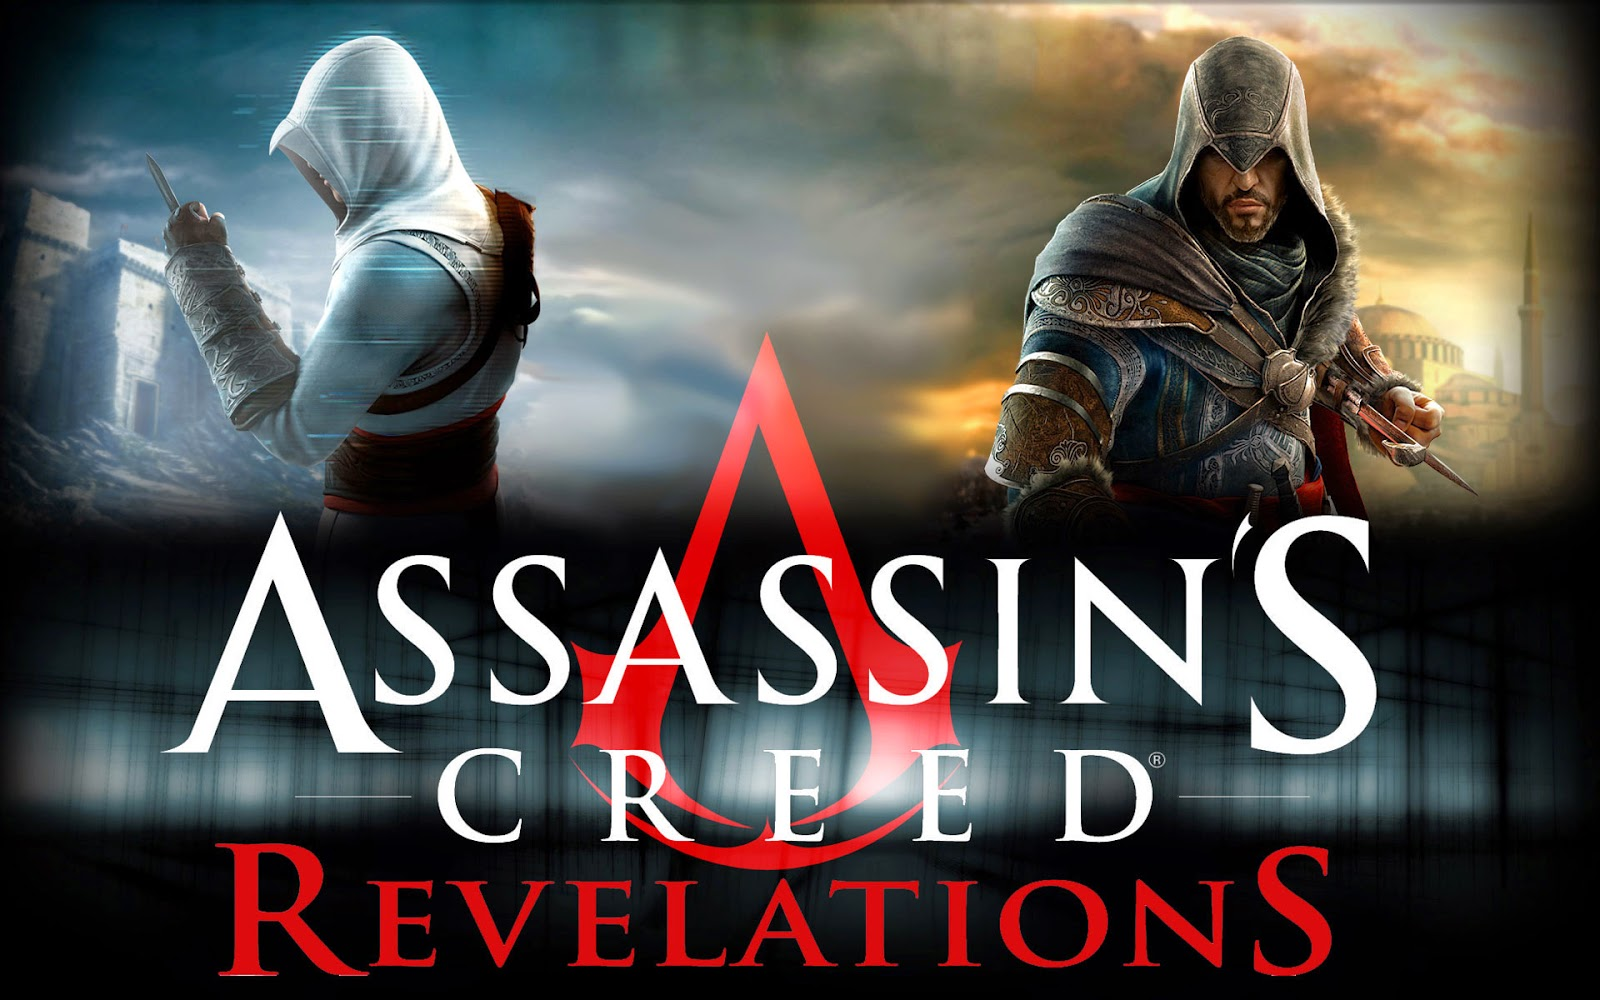 Download Assassin's Creed Revelations For Free PC